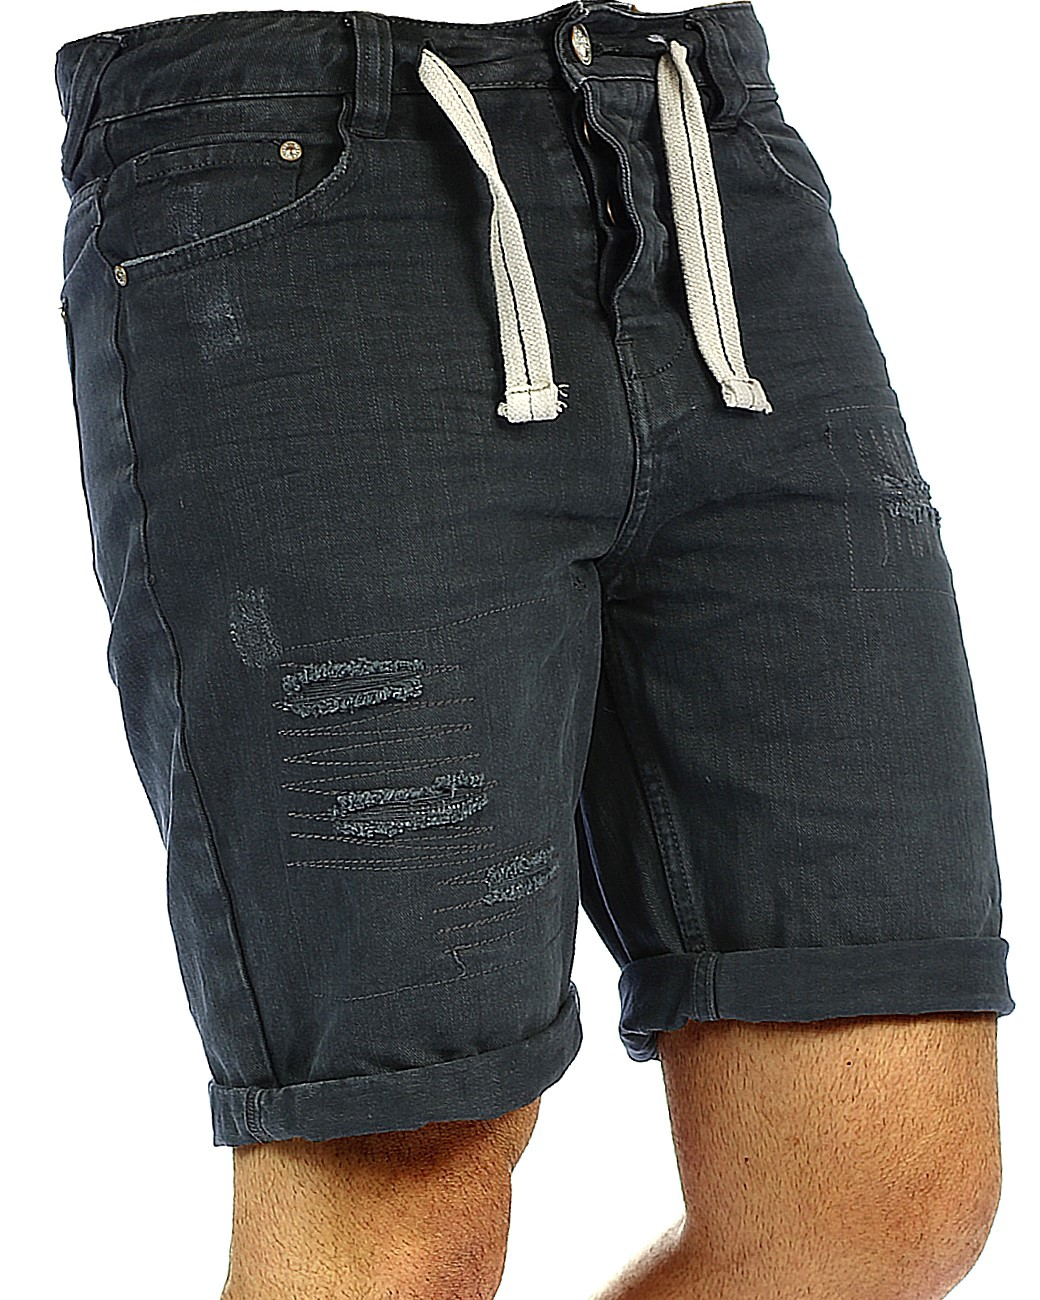 herren jeans shorts capri kurze hose mens pants denim. Black Bedroom Furniture Sets. Home Design Ideas